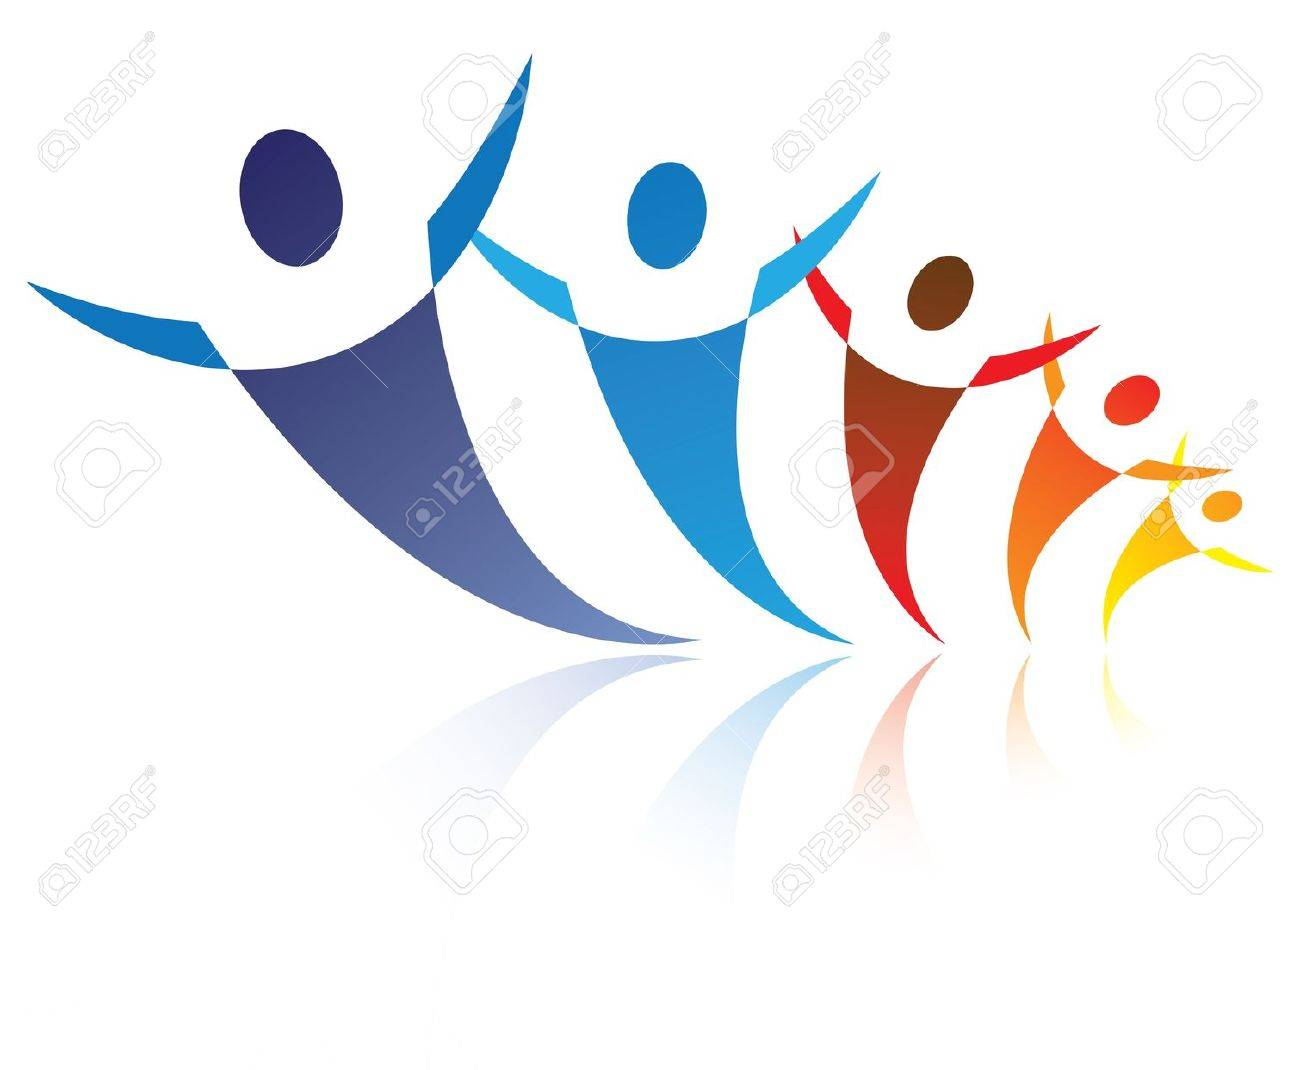 Colorful illustration of people together being positive and happy colorful illustration of people together being positive and happy the graphic represents symbolsicons biocorpaavc